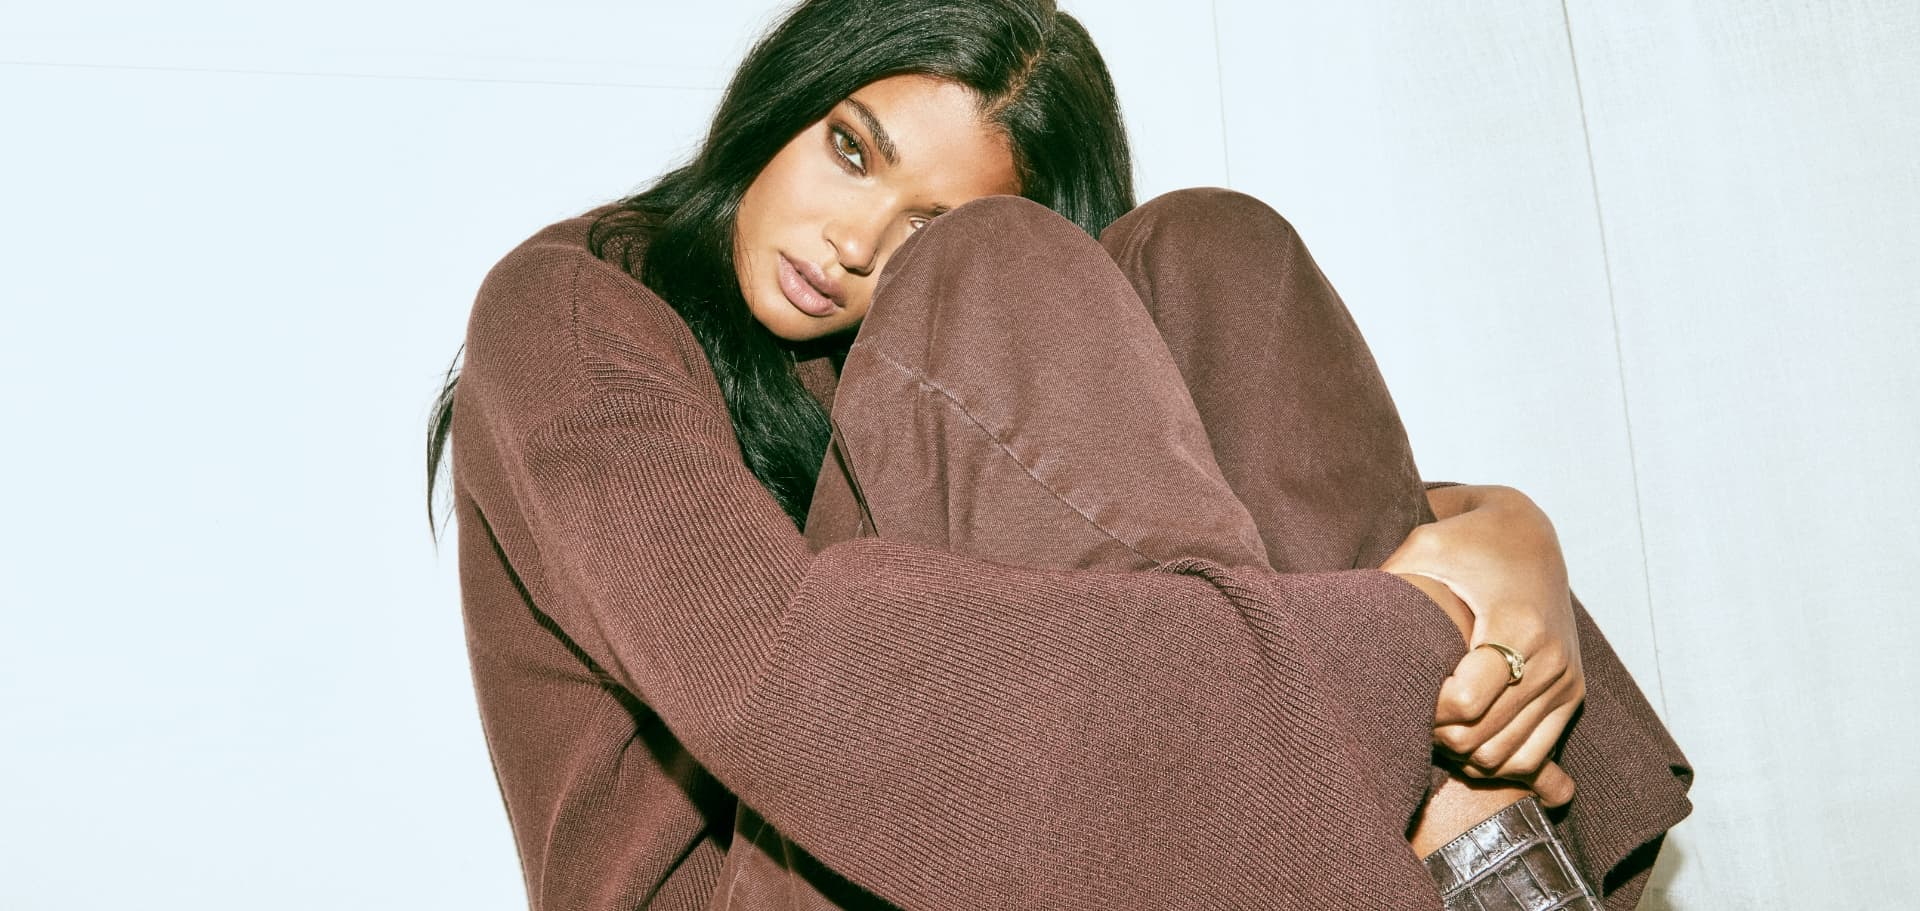 A model wears a brown sweater and matching pants.